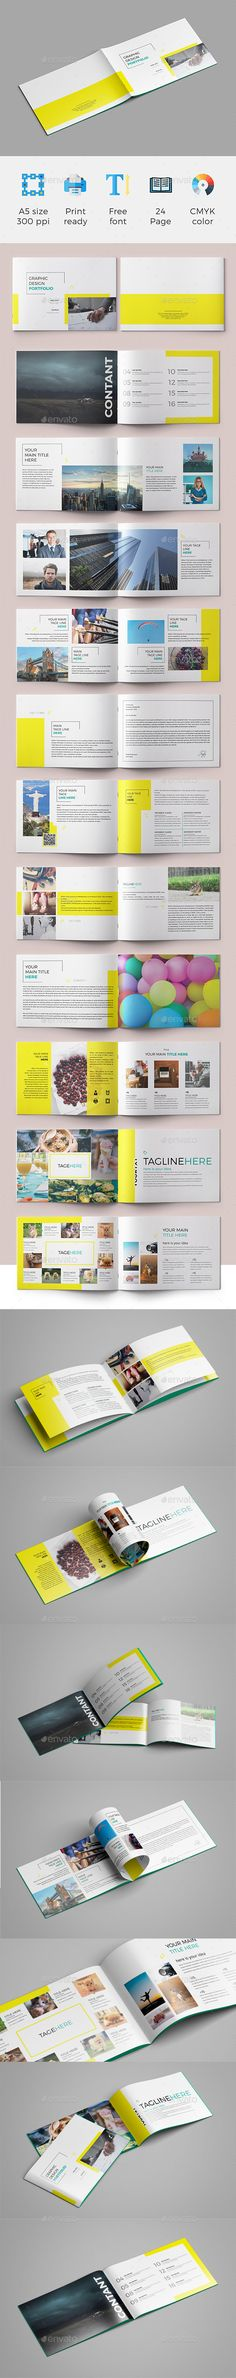 A5 Brochure 02 — InDesign INDD #flexible #booklet • Available here → https://graphicriver.net/item/a5-brochure/20680146?ref=pxcr